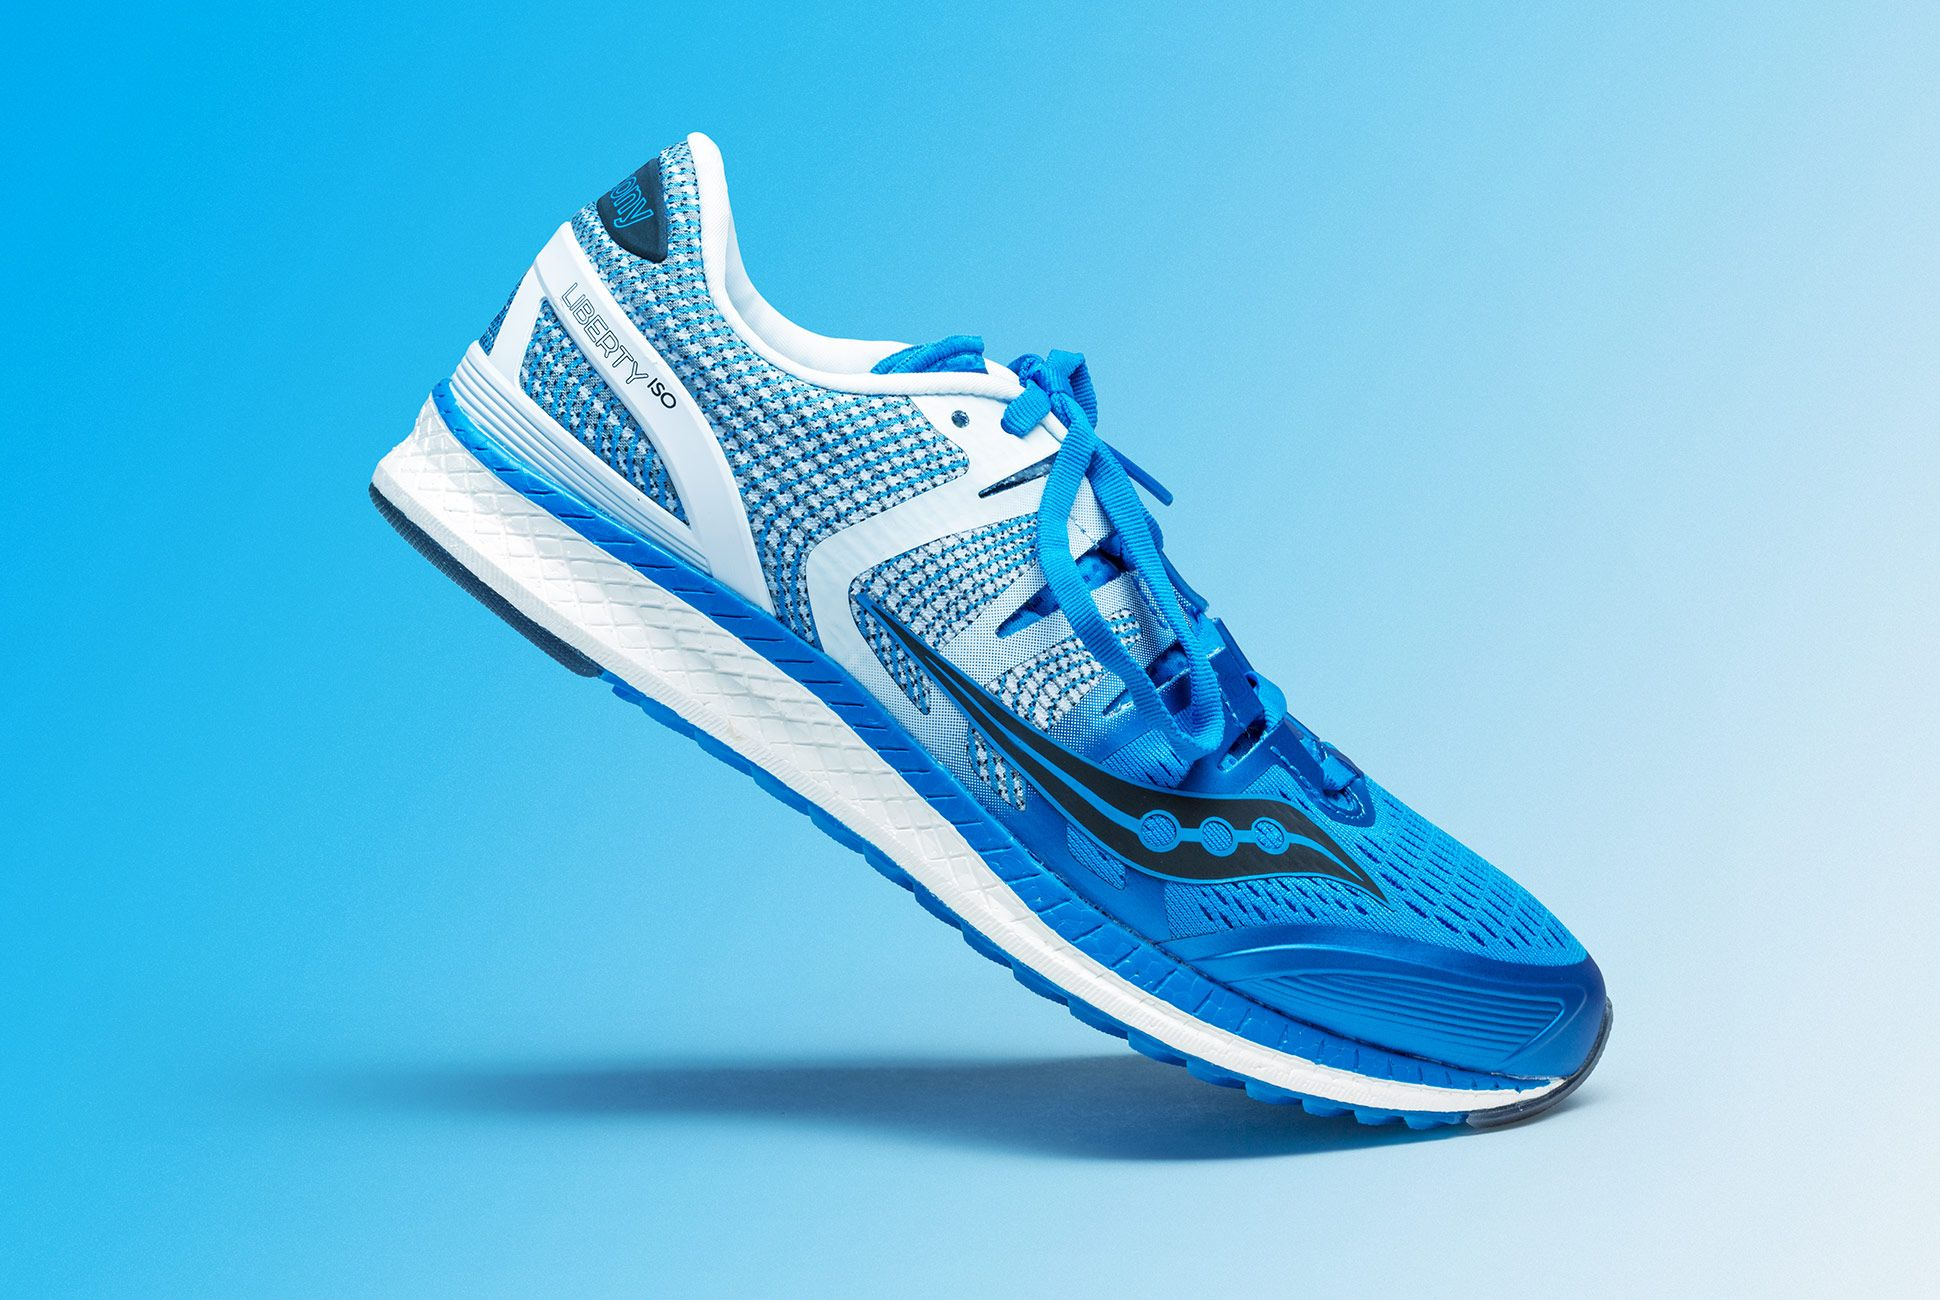 best mizuno running shoes for heavy runners reddit